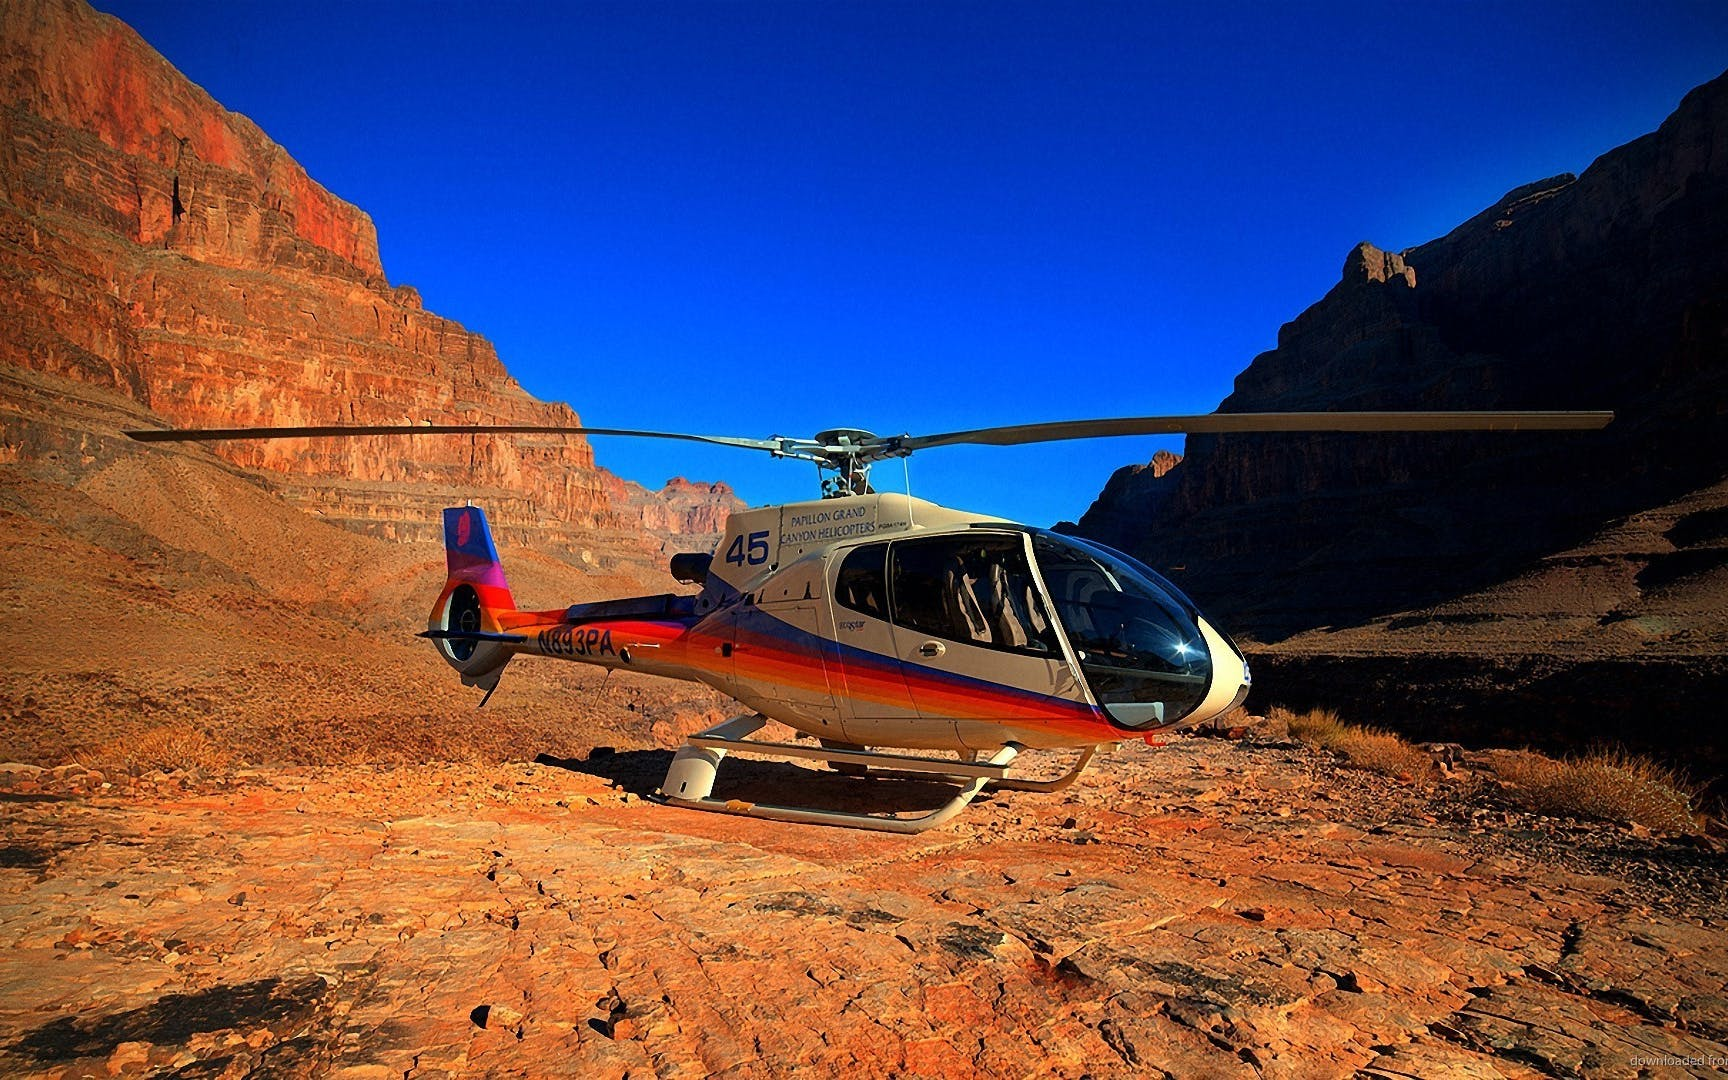 south rim helicopter tour with optional jeep excursion - 45 minutes (self drive)-1